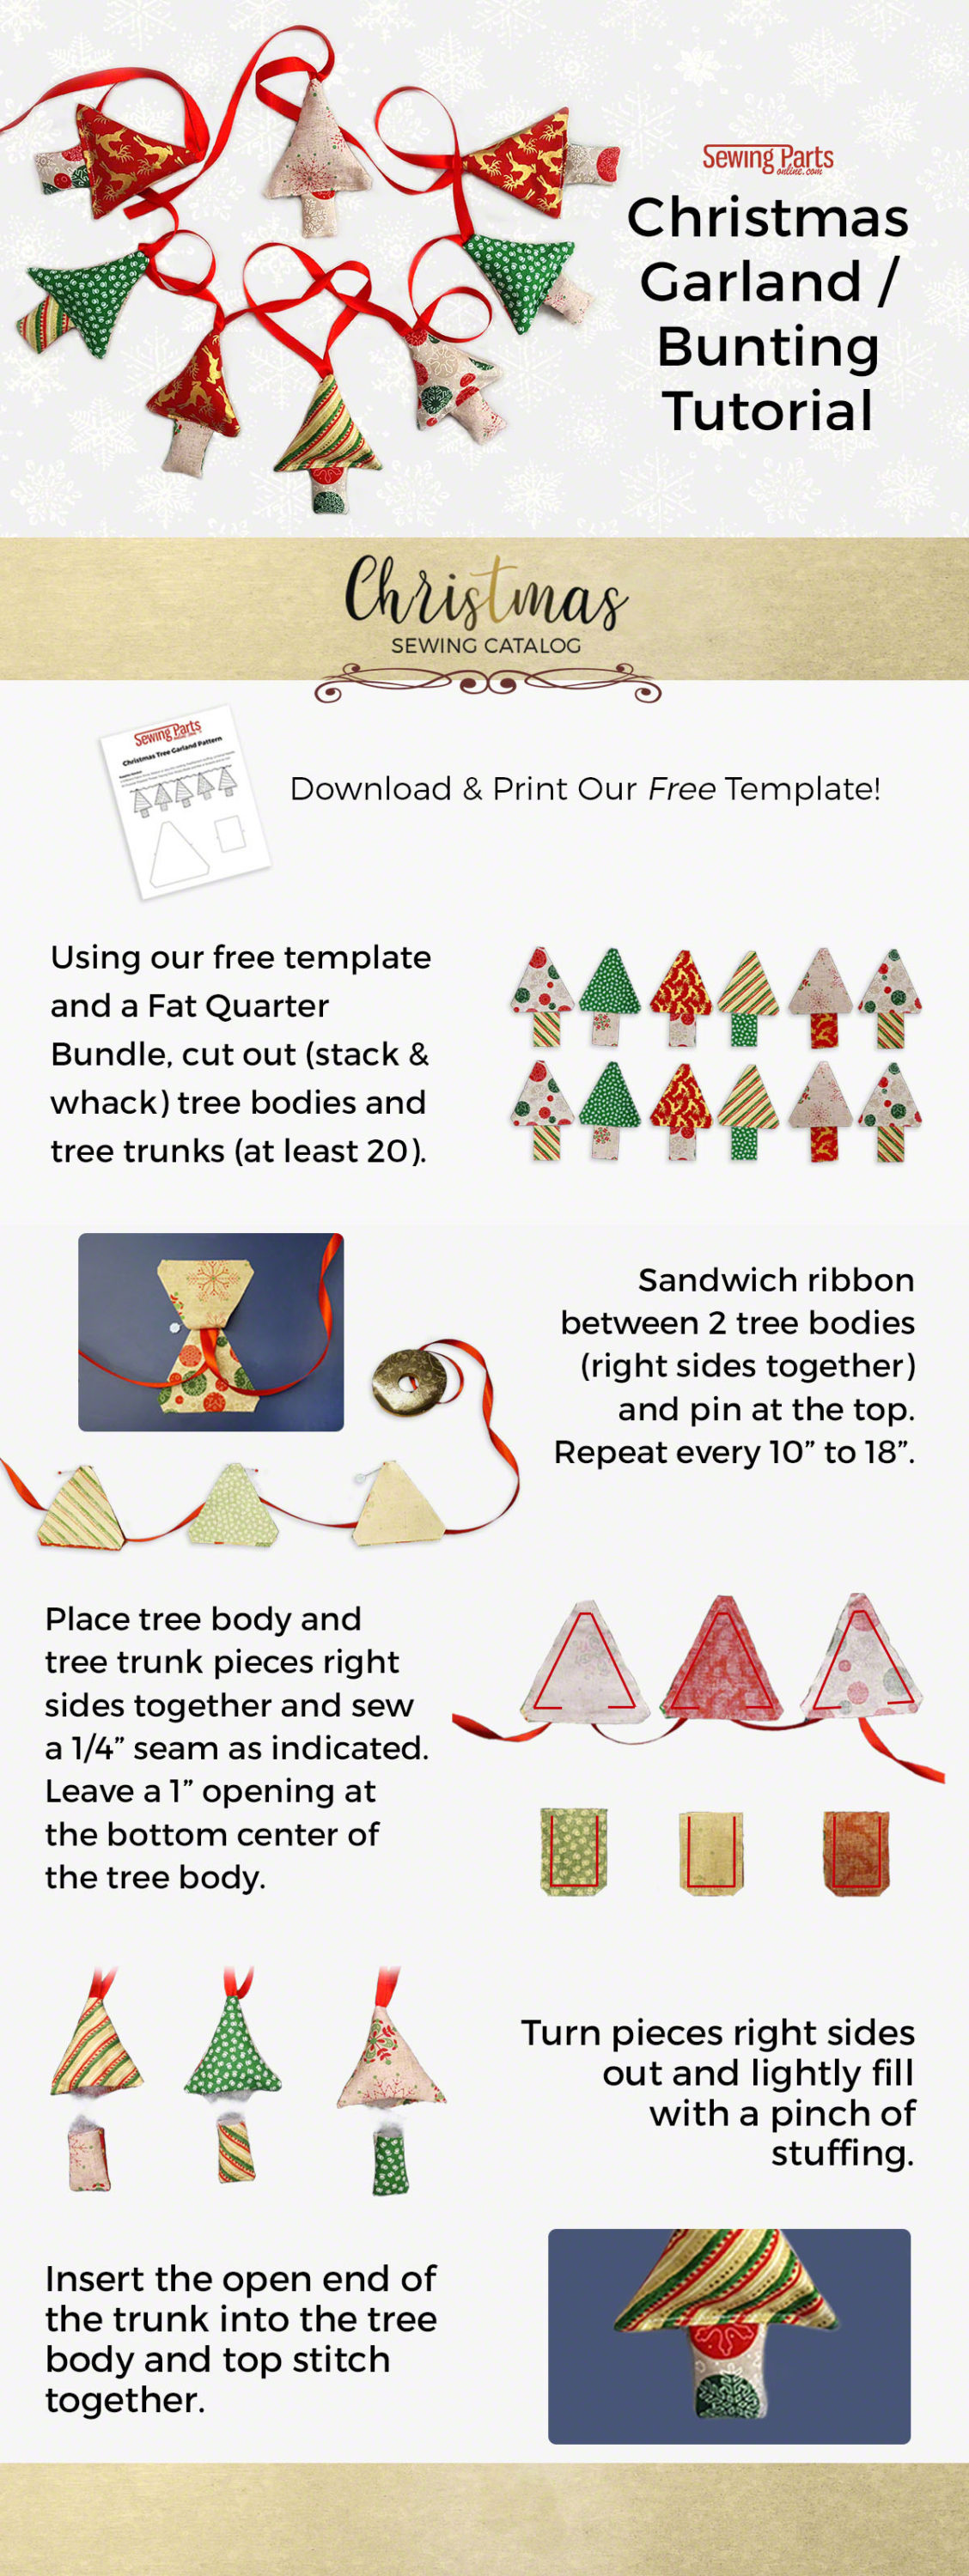 Christmas Fabric Garland Bunting Tutorial Sewing Parts Online Everything Sewing Delivered Quickly To Your Door